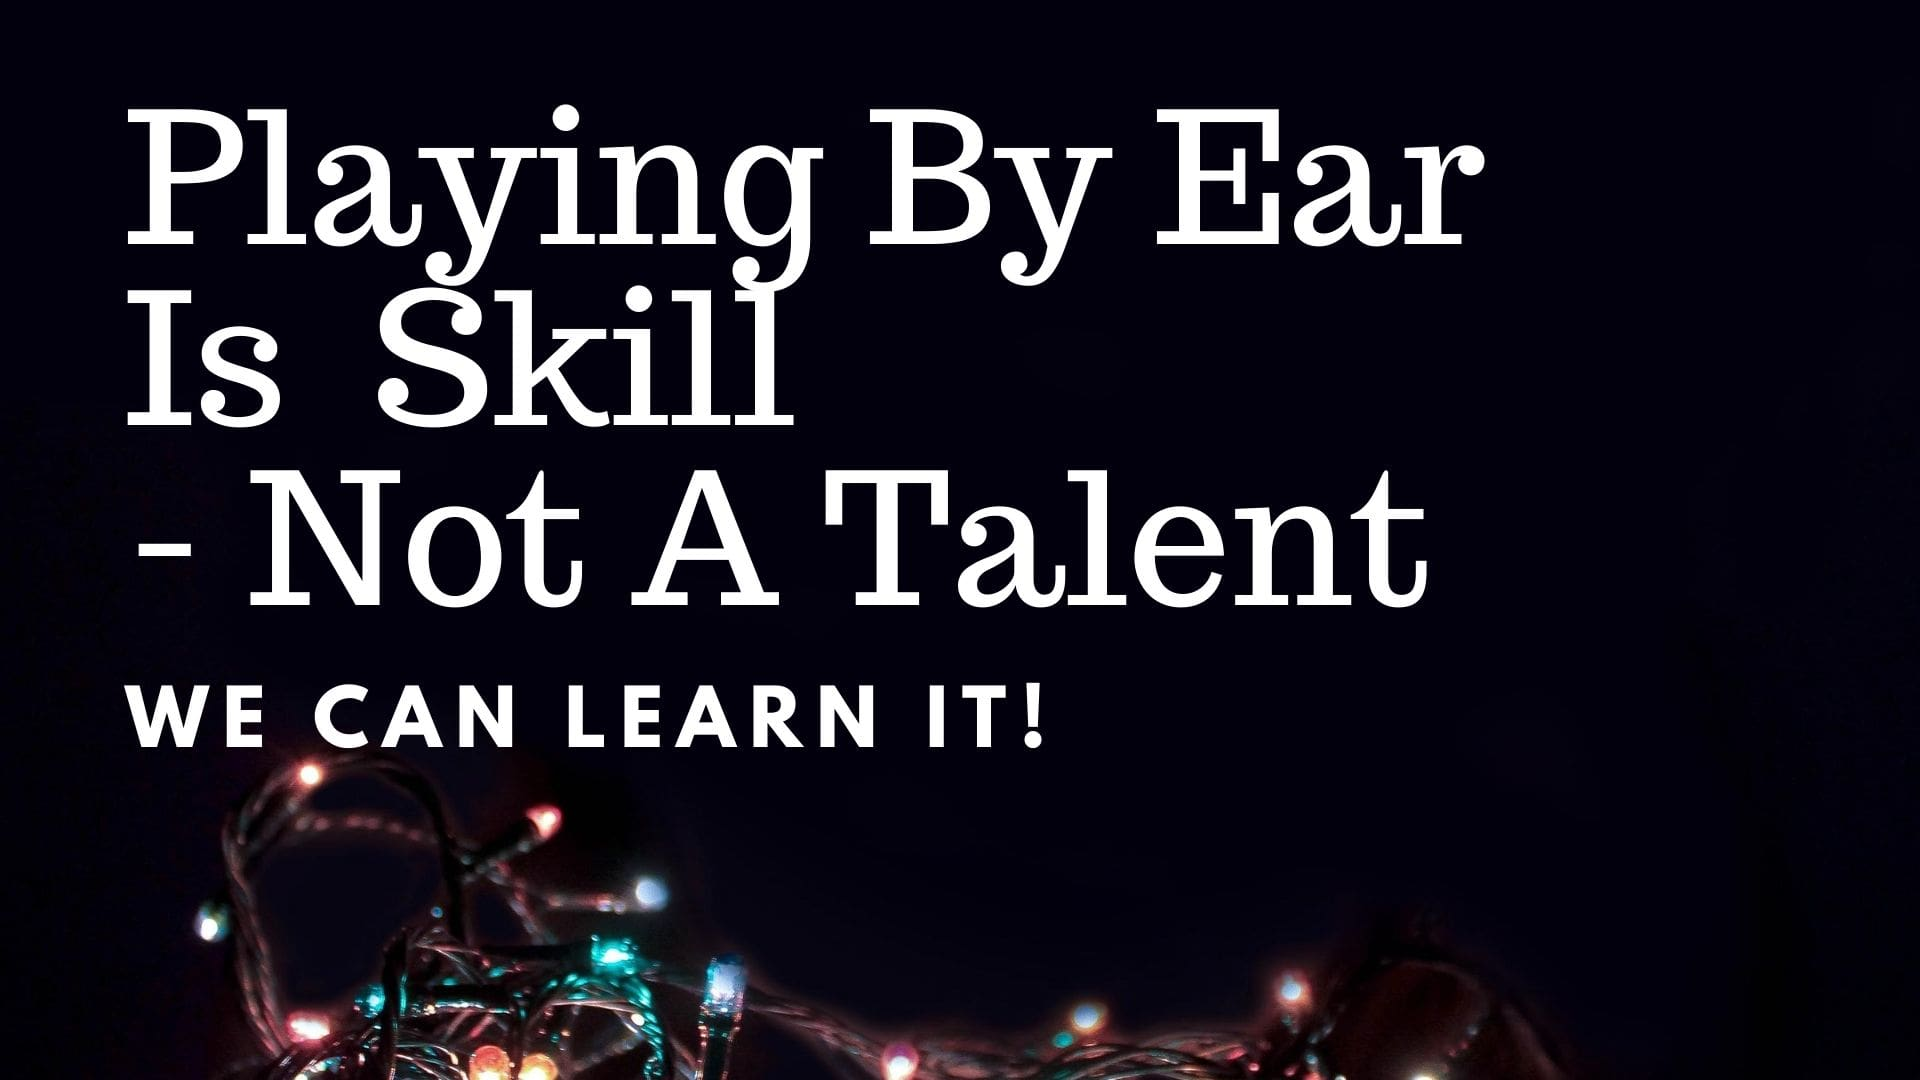 Playing By Ear is a Skill Not A Talent